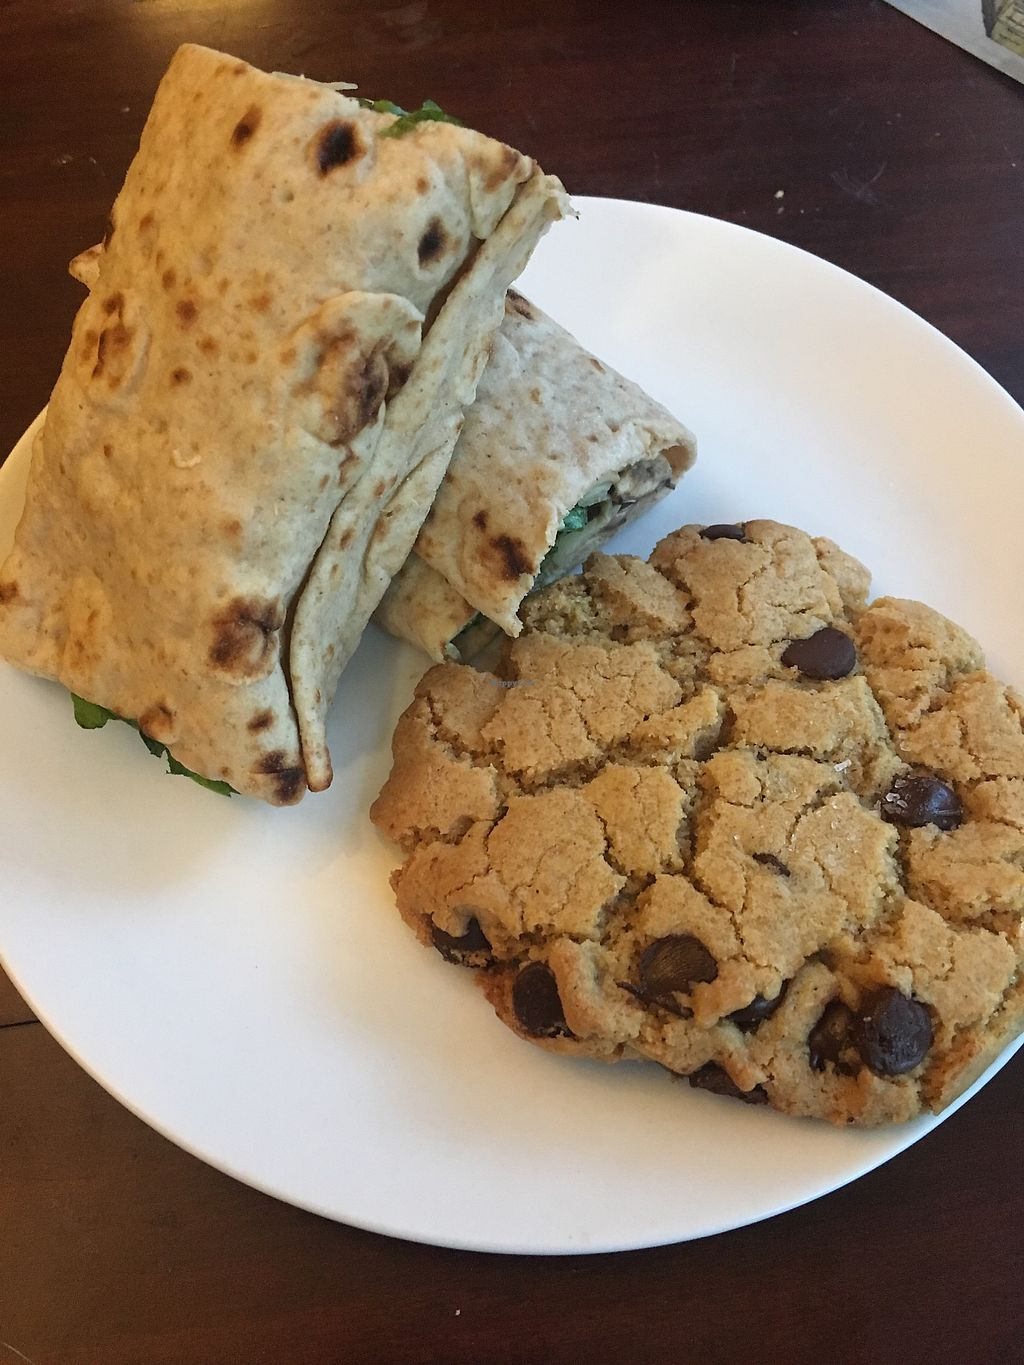 """Photo of Agora Downtown Coffee Shop  by <a href=""""/members/profile/mem2024"""">mem2024</a> <br/>Vegan Wrap and Cookie <br/> January 28, 2018  - <a href='/contact/abuse/image/78960/352118'>Report</a>"""